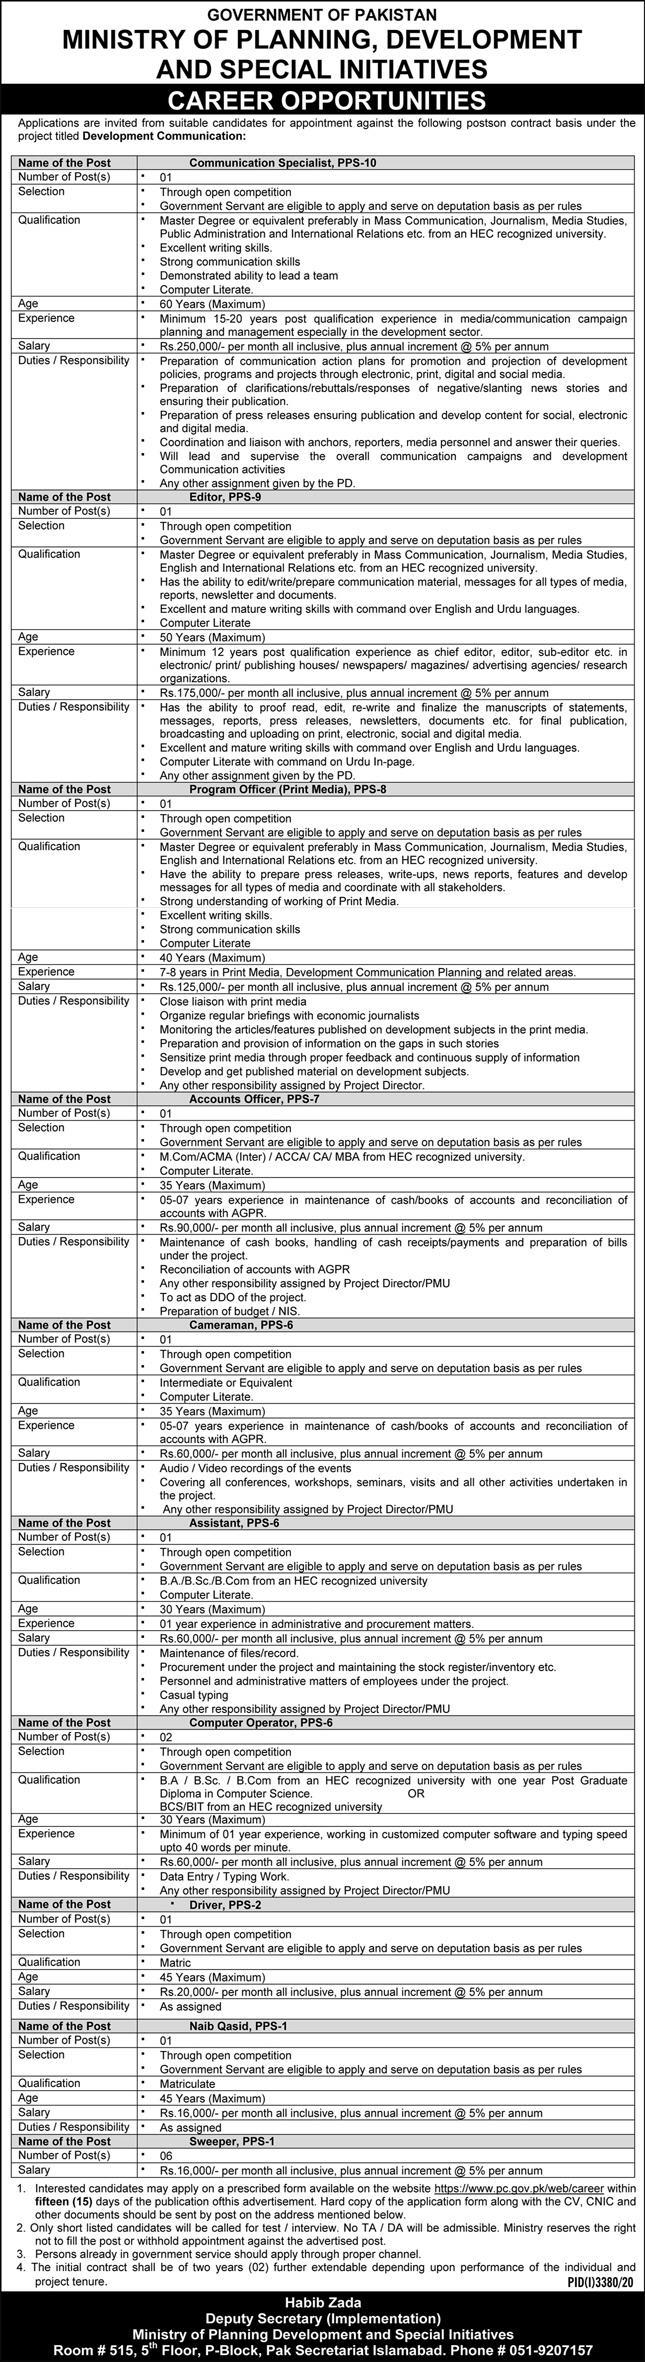 Ministry of Planning Development & Special Initiatives Jobs 2021 - Government of Pakistan Jobs 2021 - www.pc.gov.pk/web/career - Jobs in Pakistan 2021